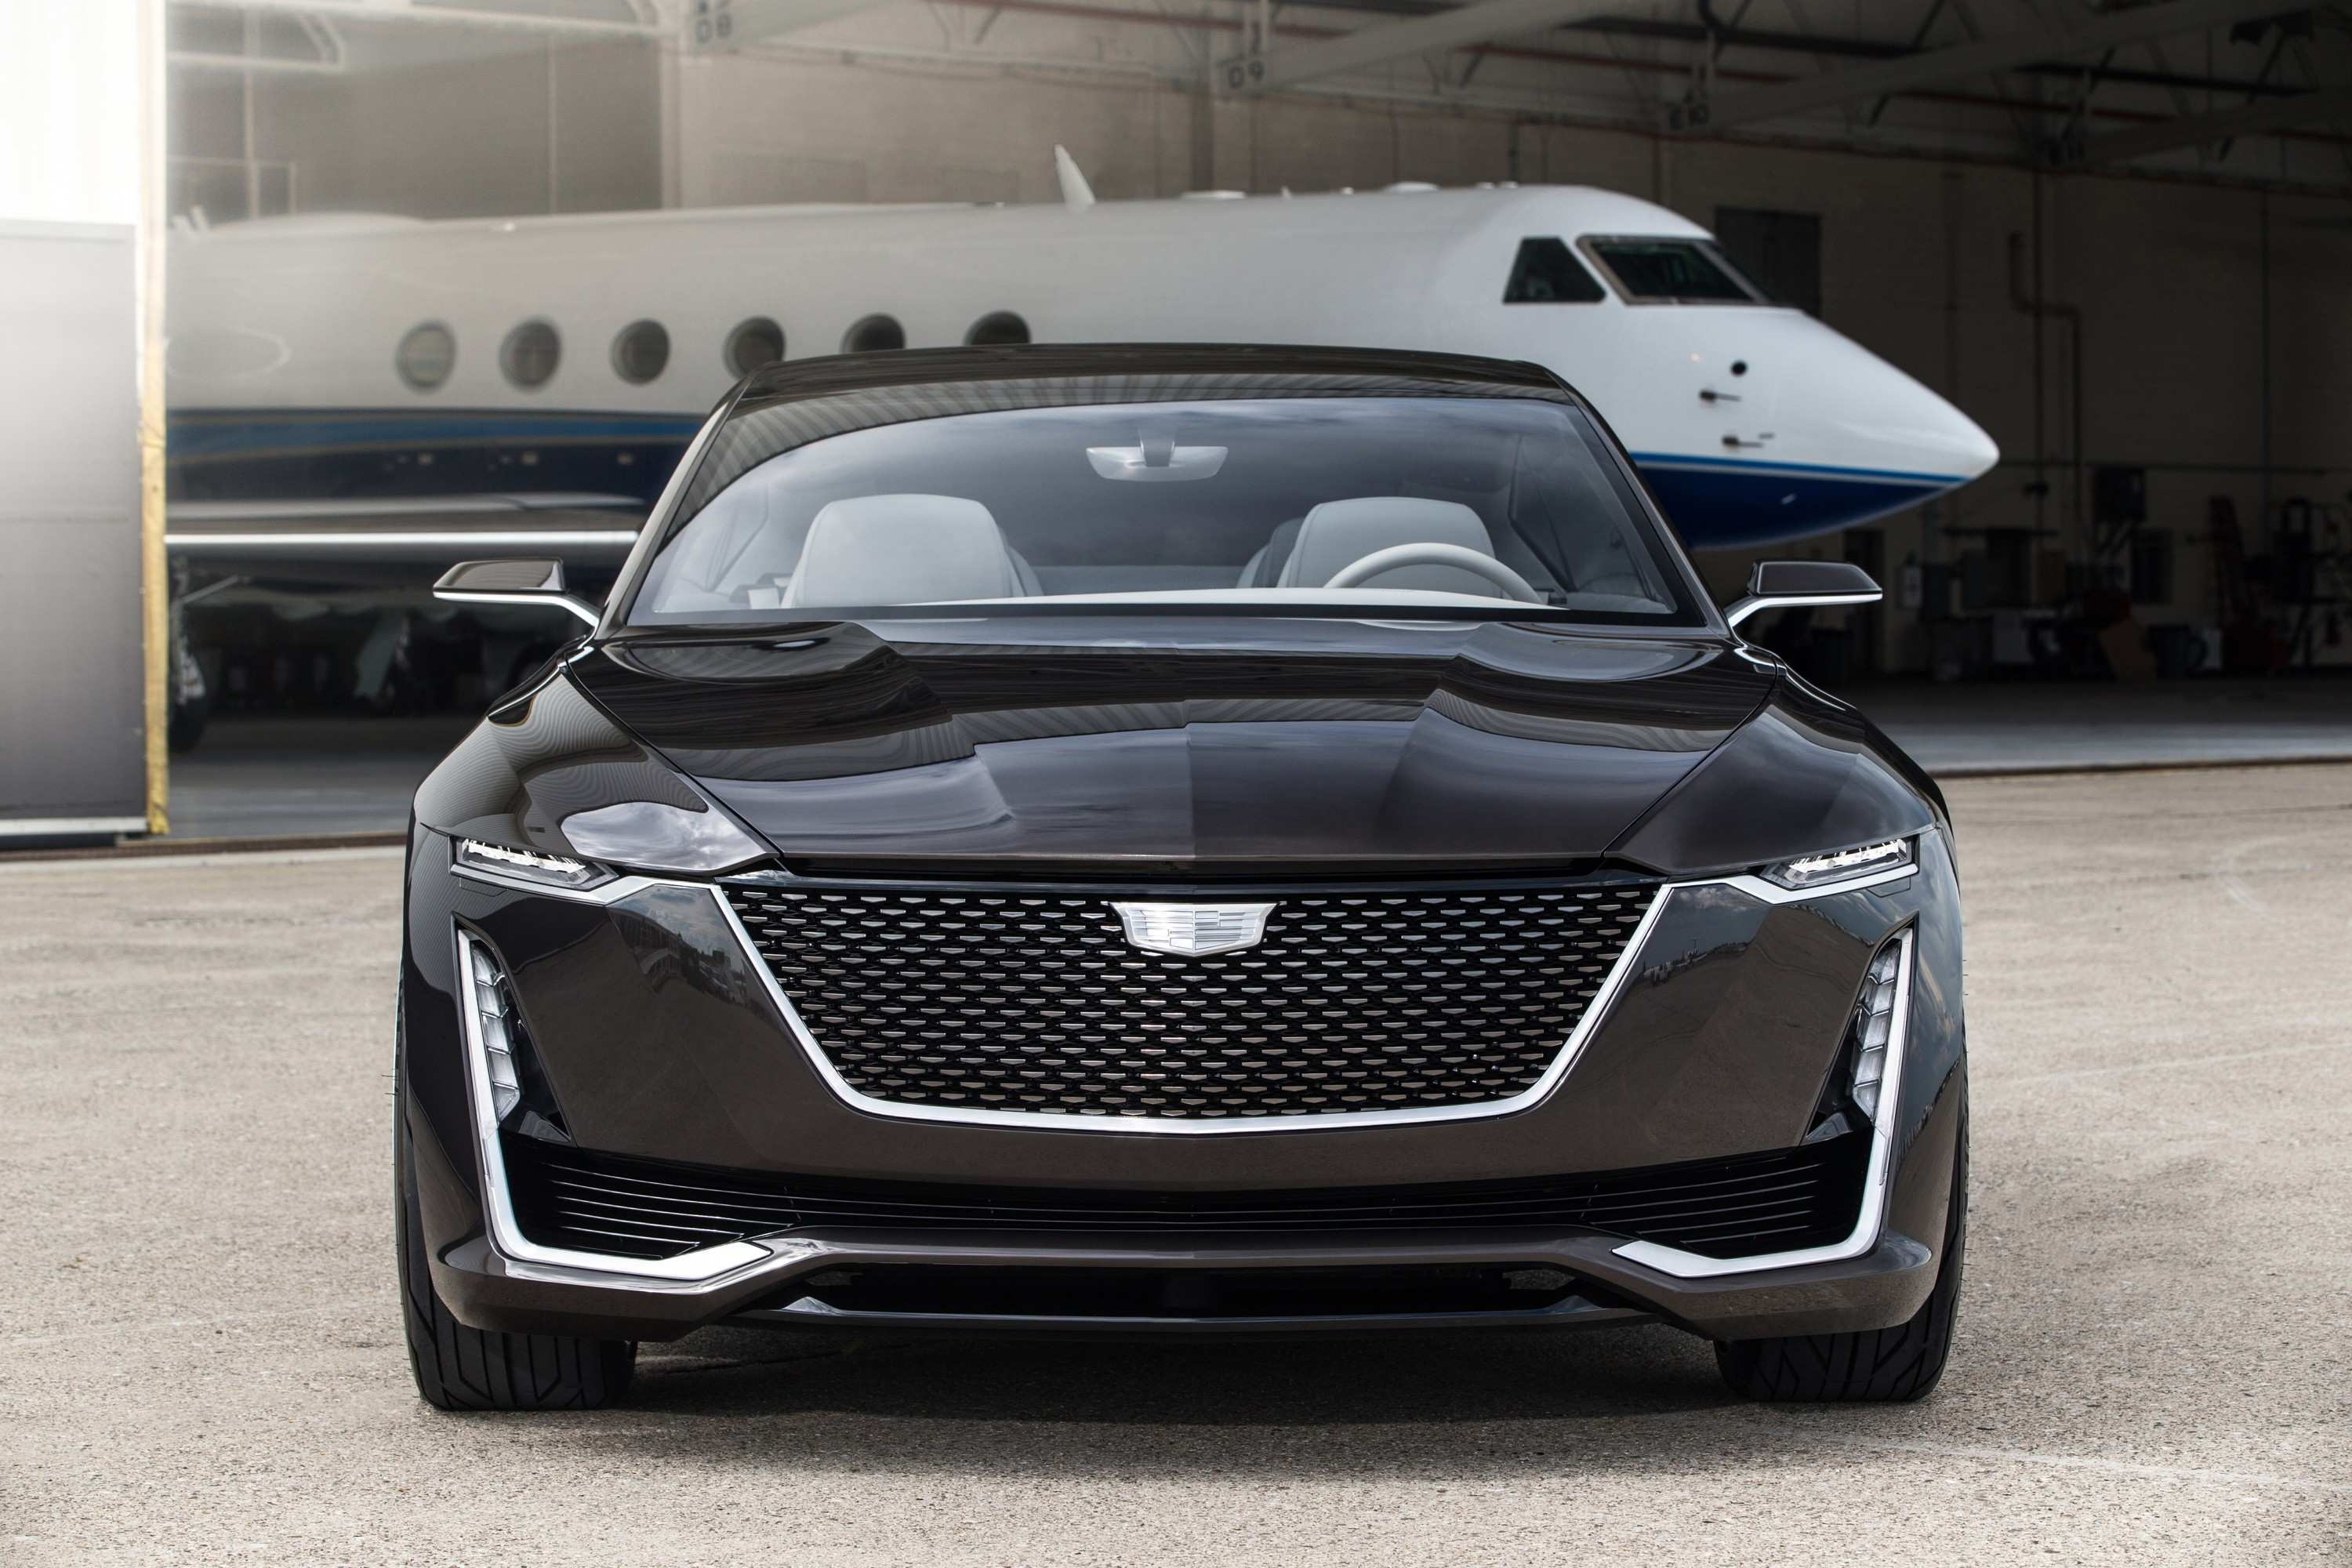 61 The Best 2020 Cadillac V8 Images